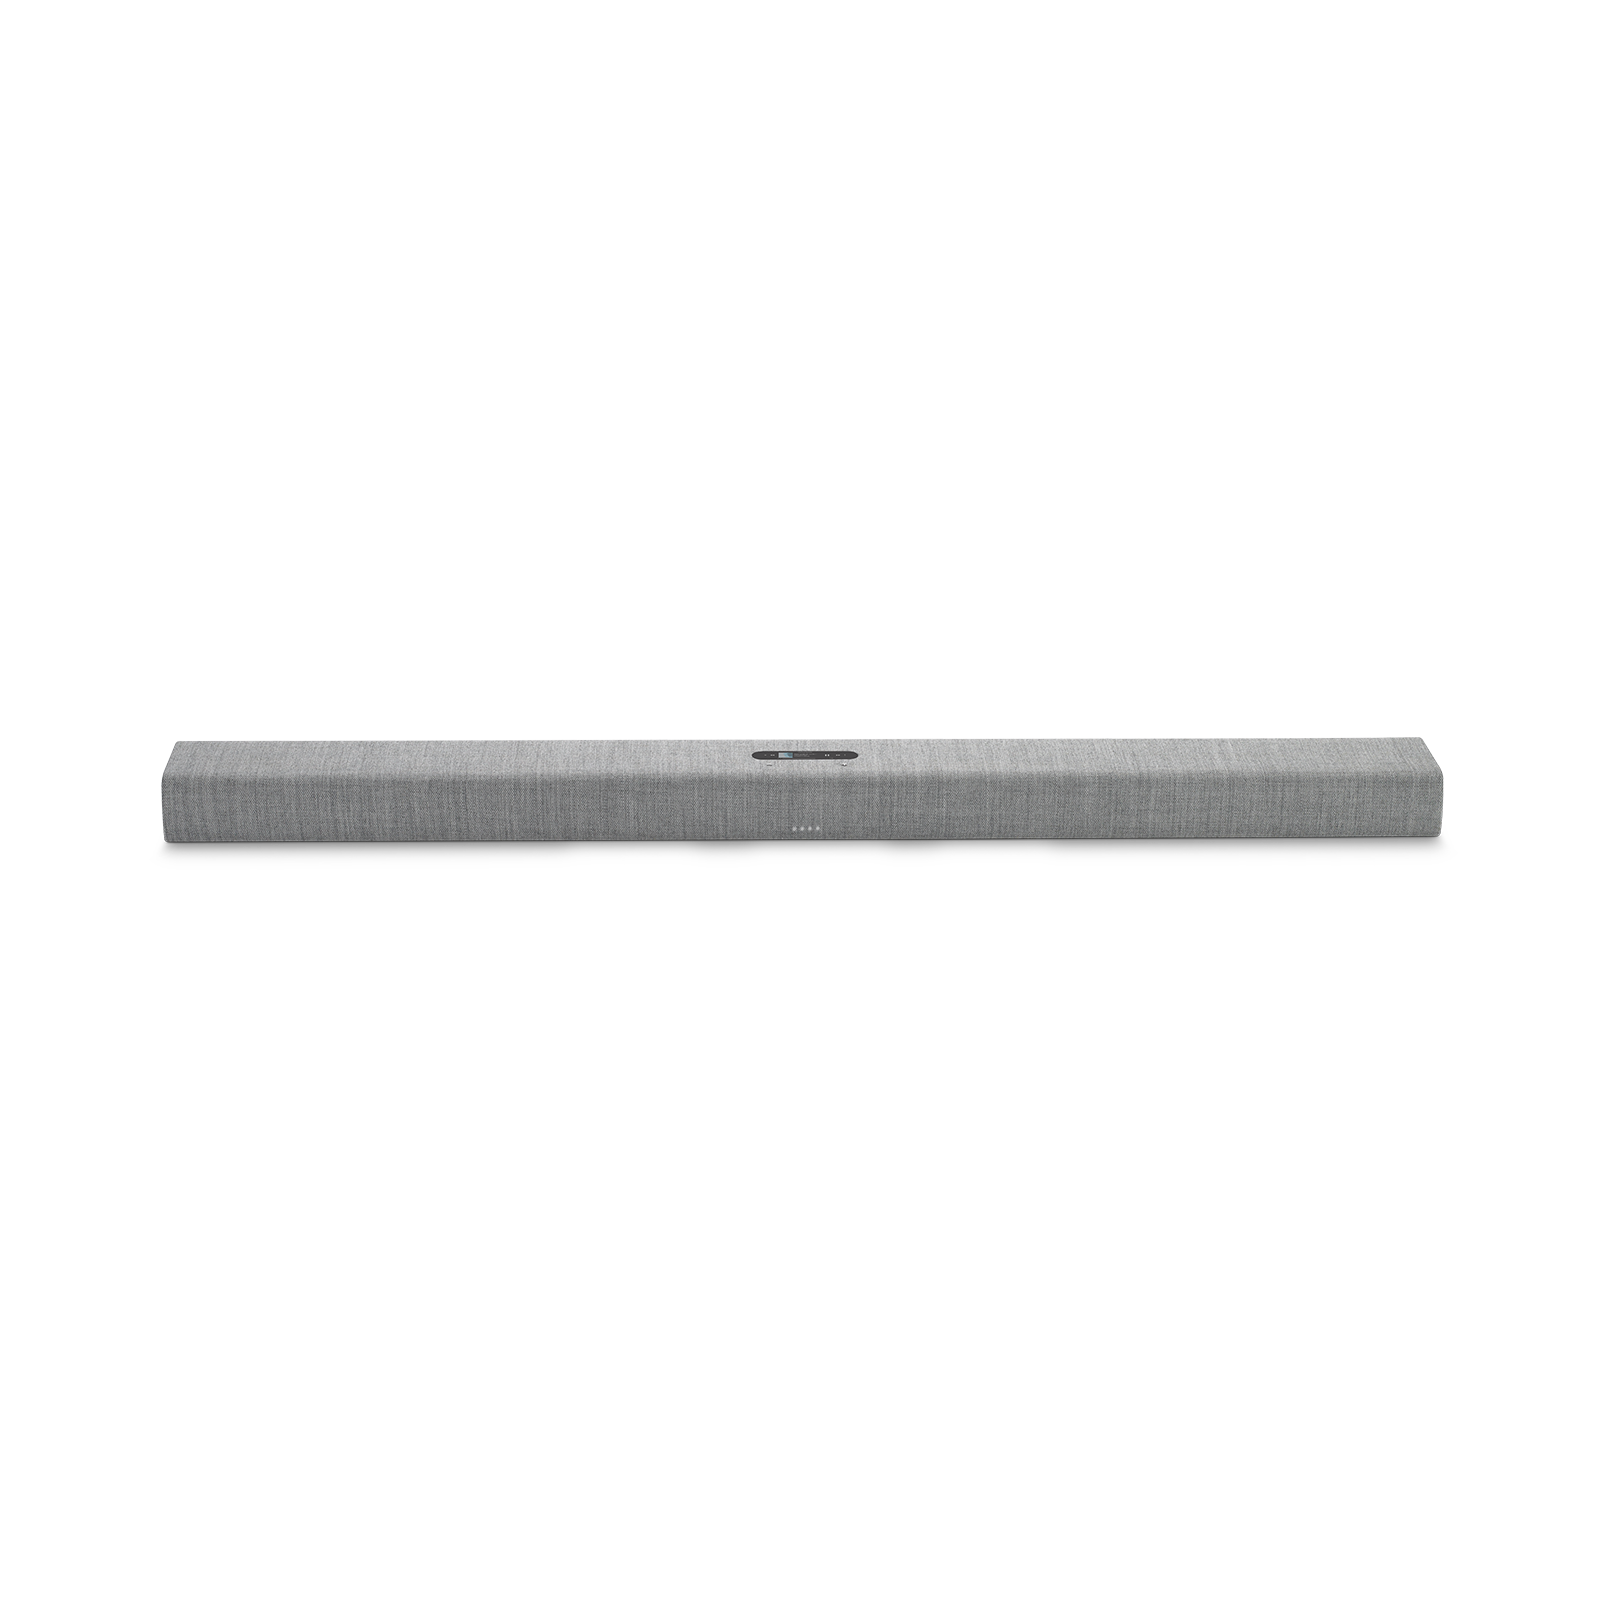 Harman Kardon Citation Bar